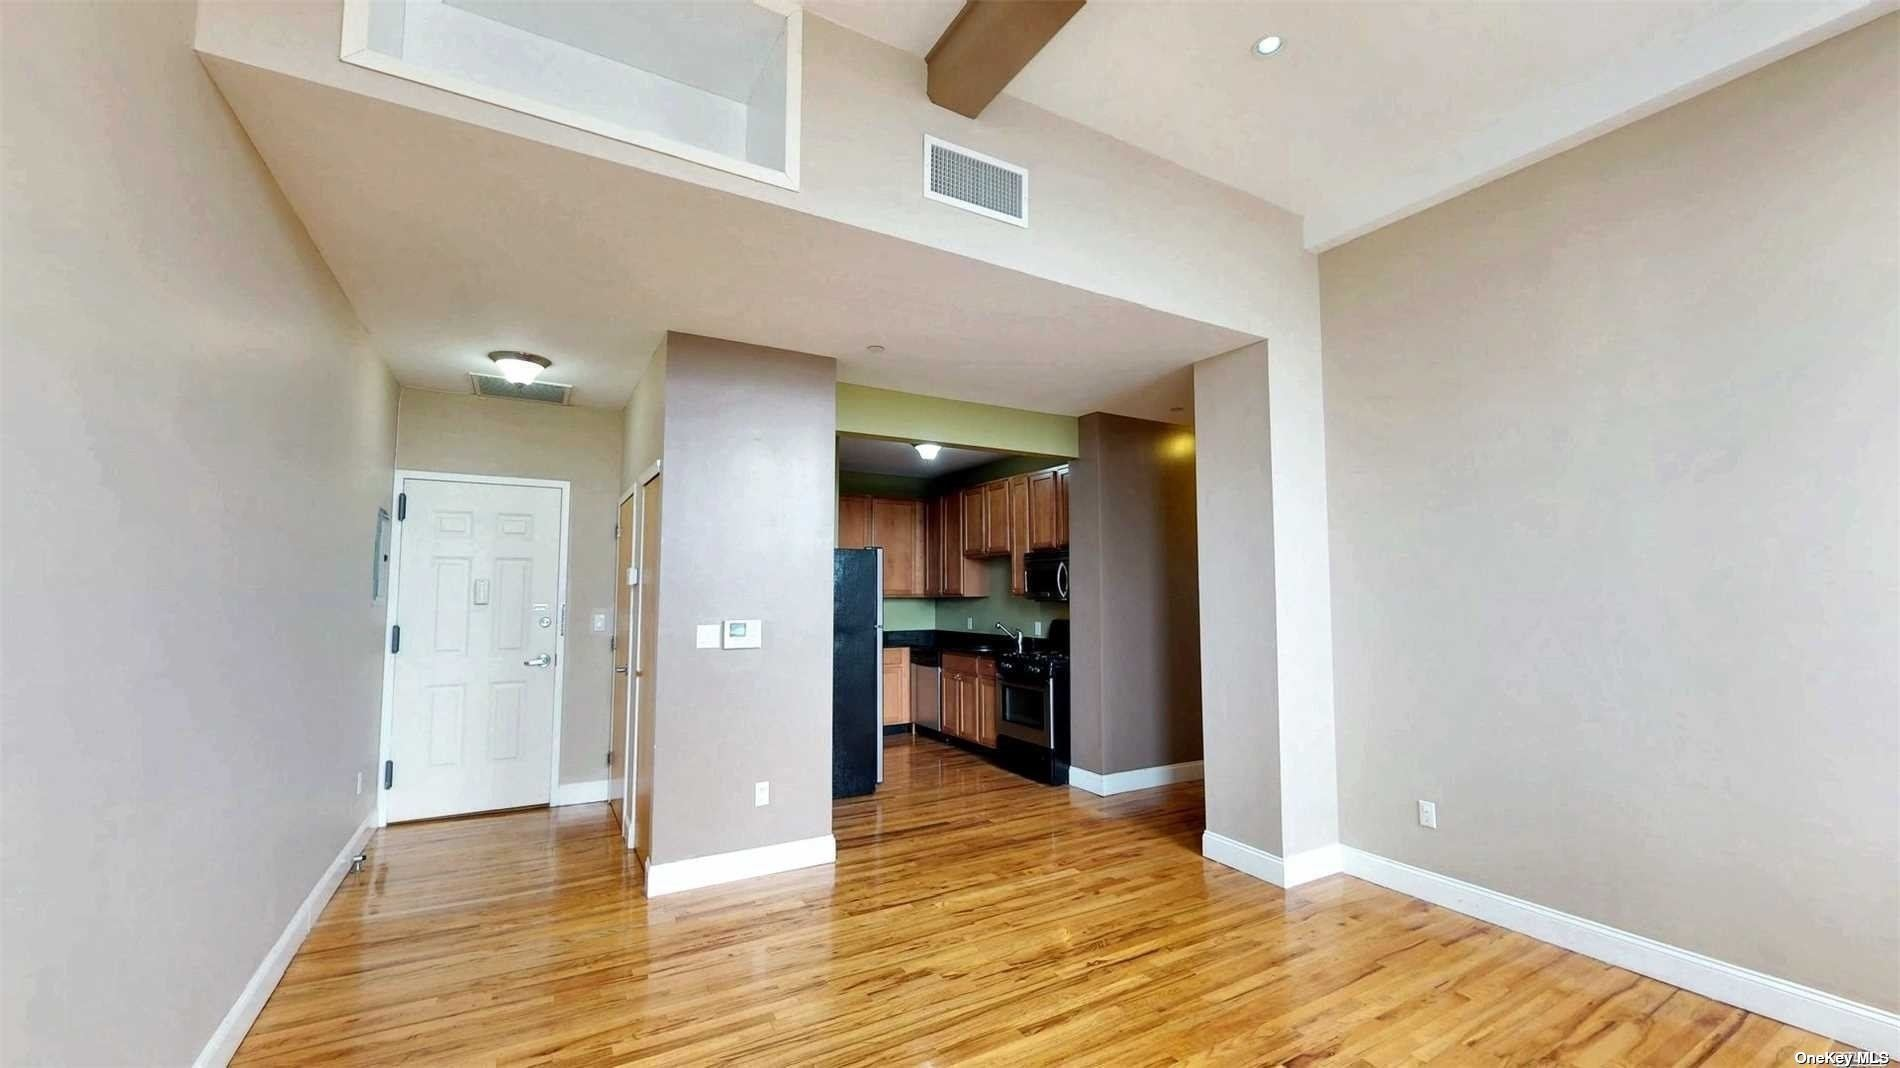 76-18 69th Place #3D, Glendale, NY 11385 - MLS#: 3303038